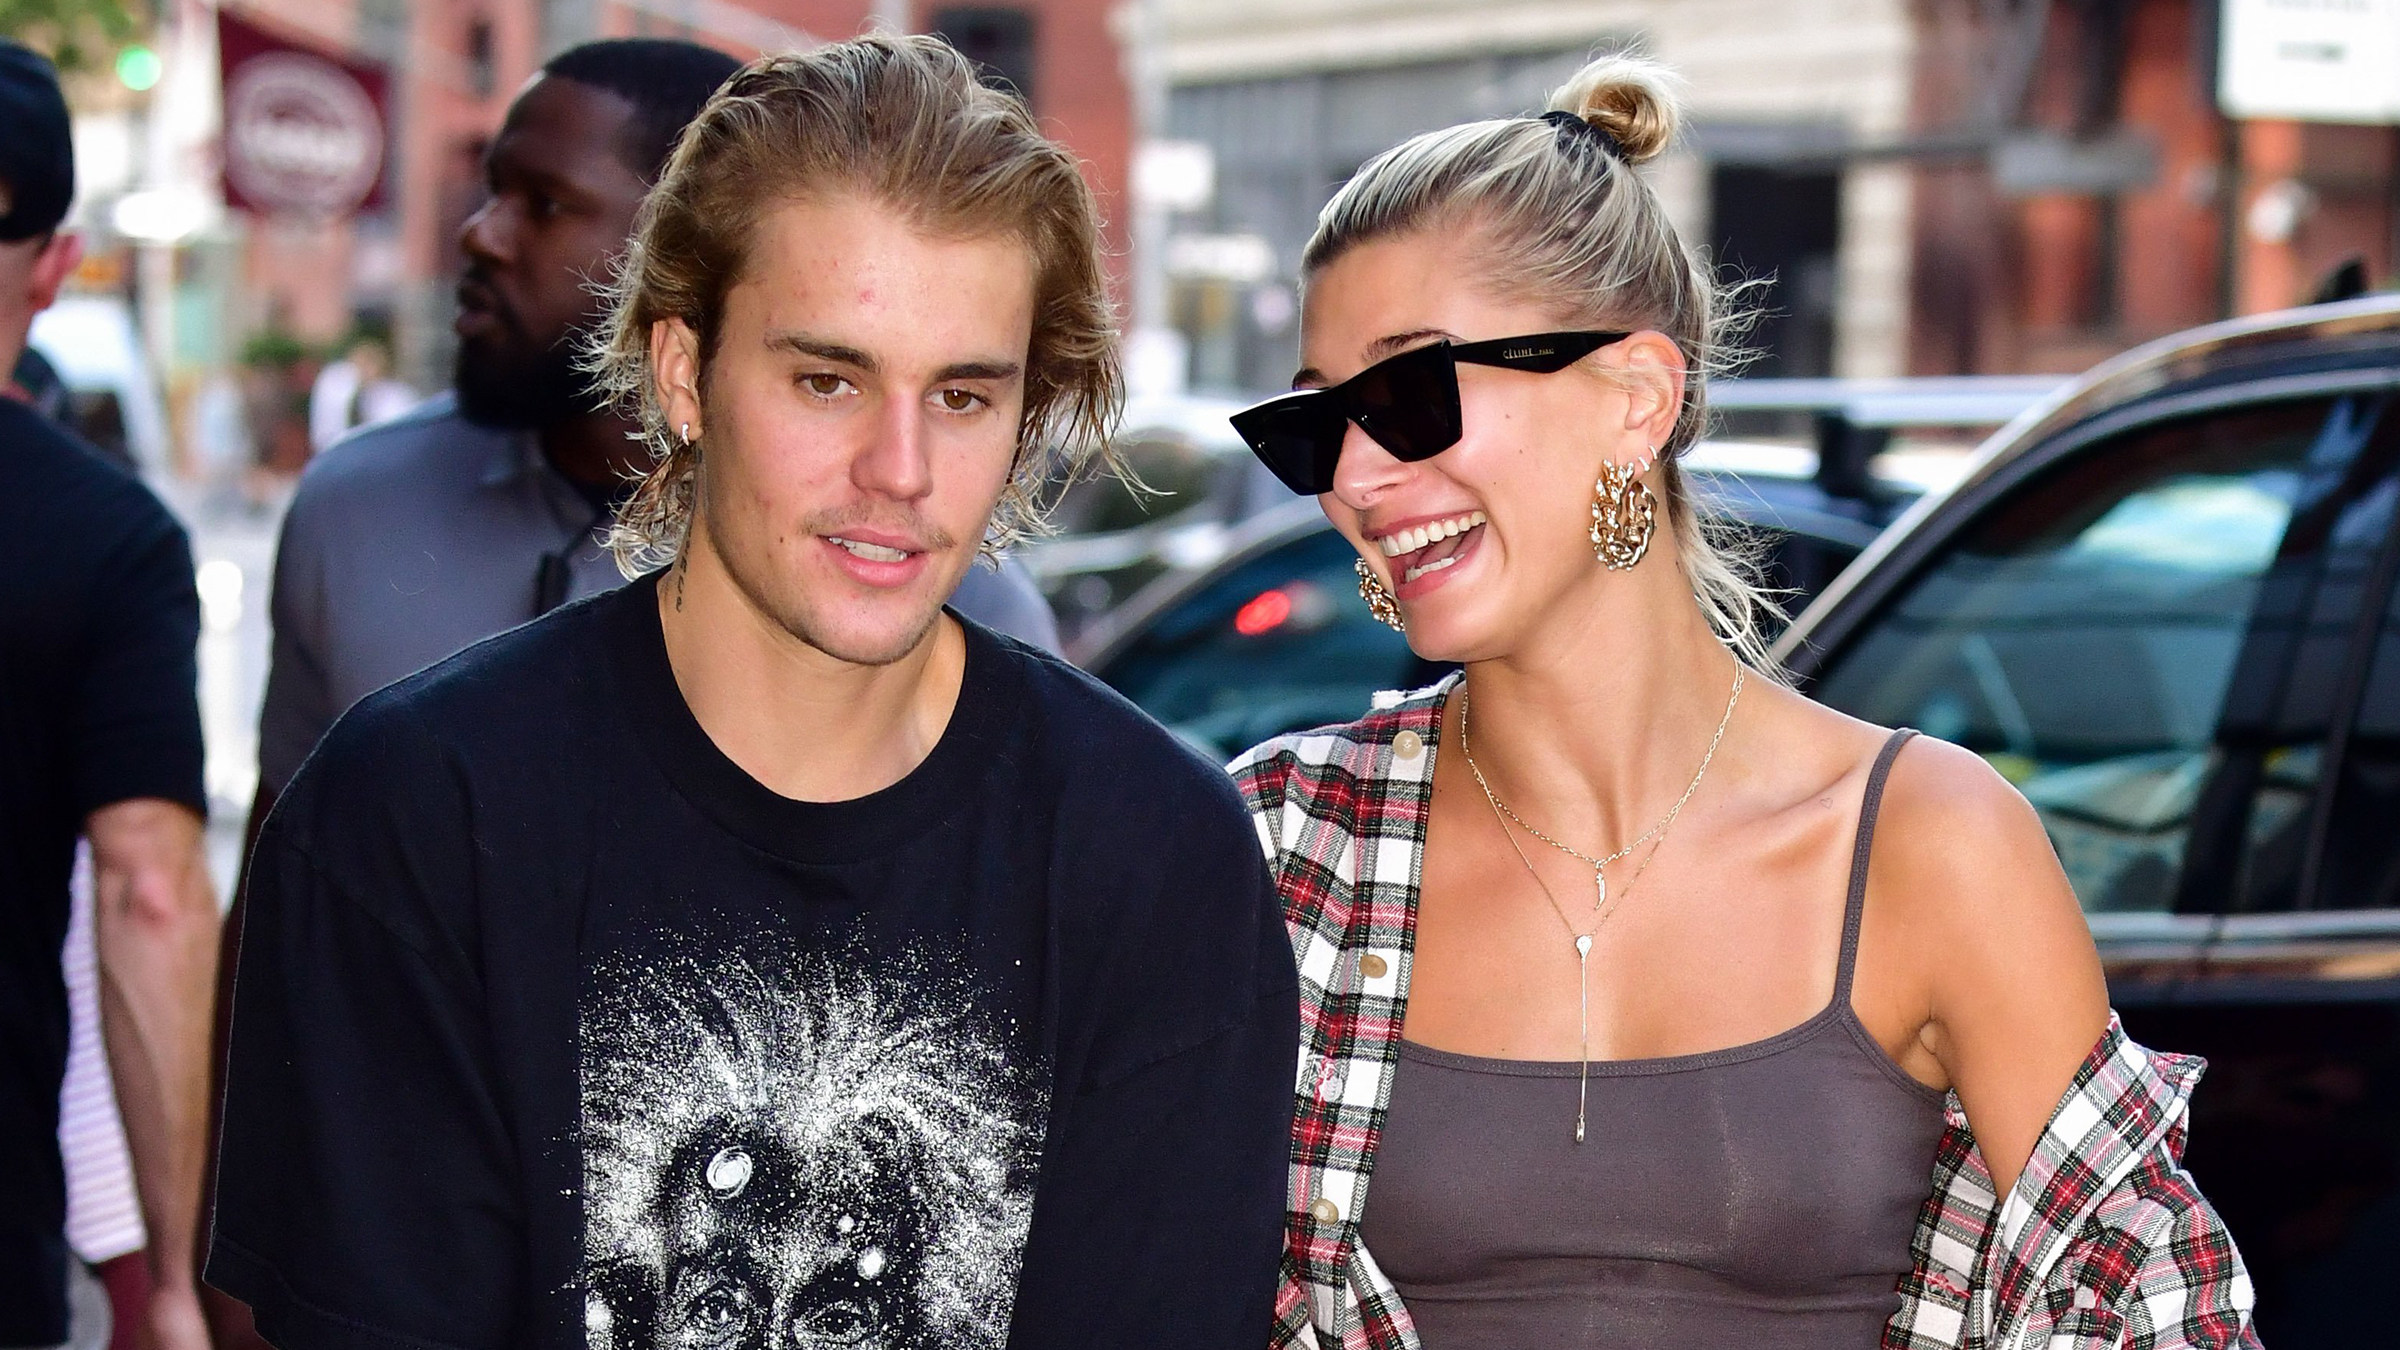 Justin Bieber and Hailey Baldwin visit Honeybrains on Lafayette Street on August 8, 2018 in New York City.